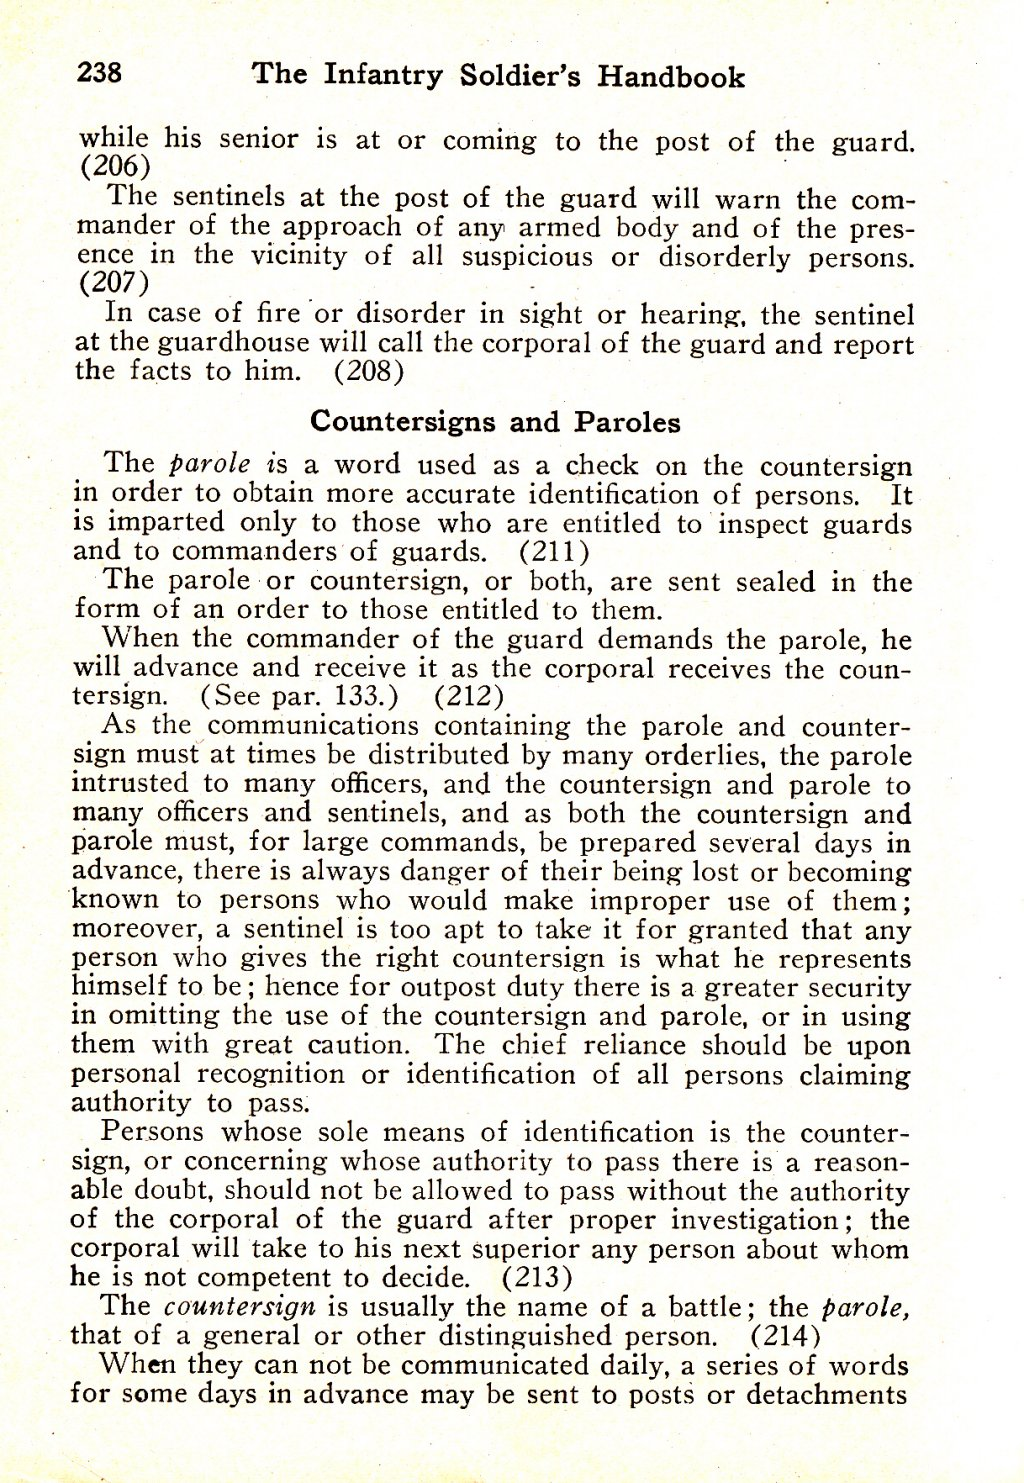 314th Infantry Regiment - Infantry Soldiers Handbook - Waldron - Page 238